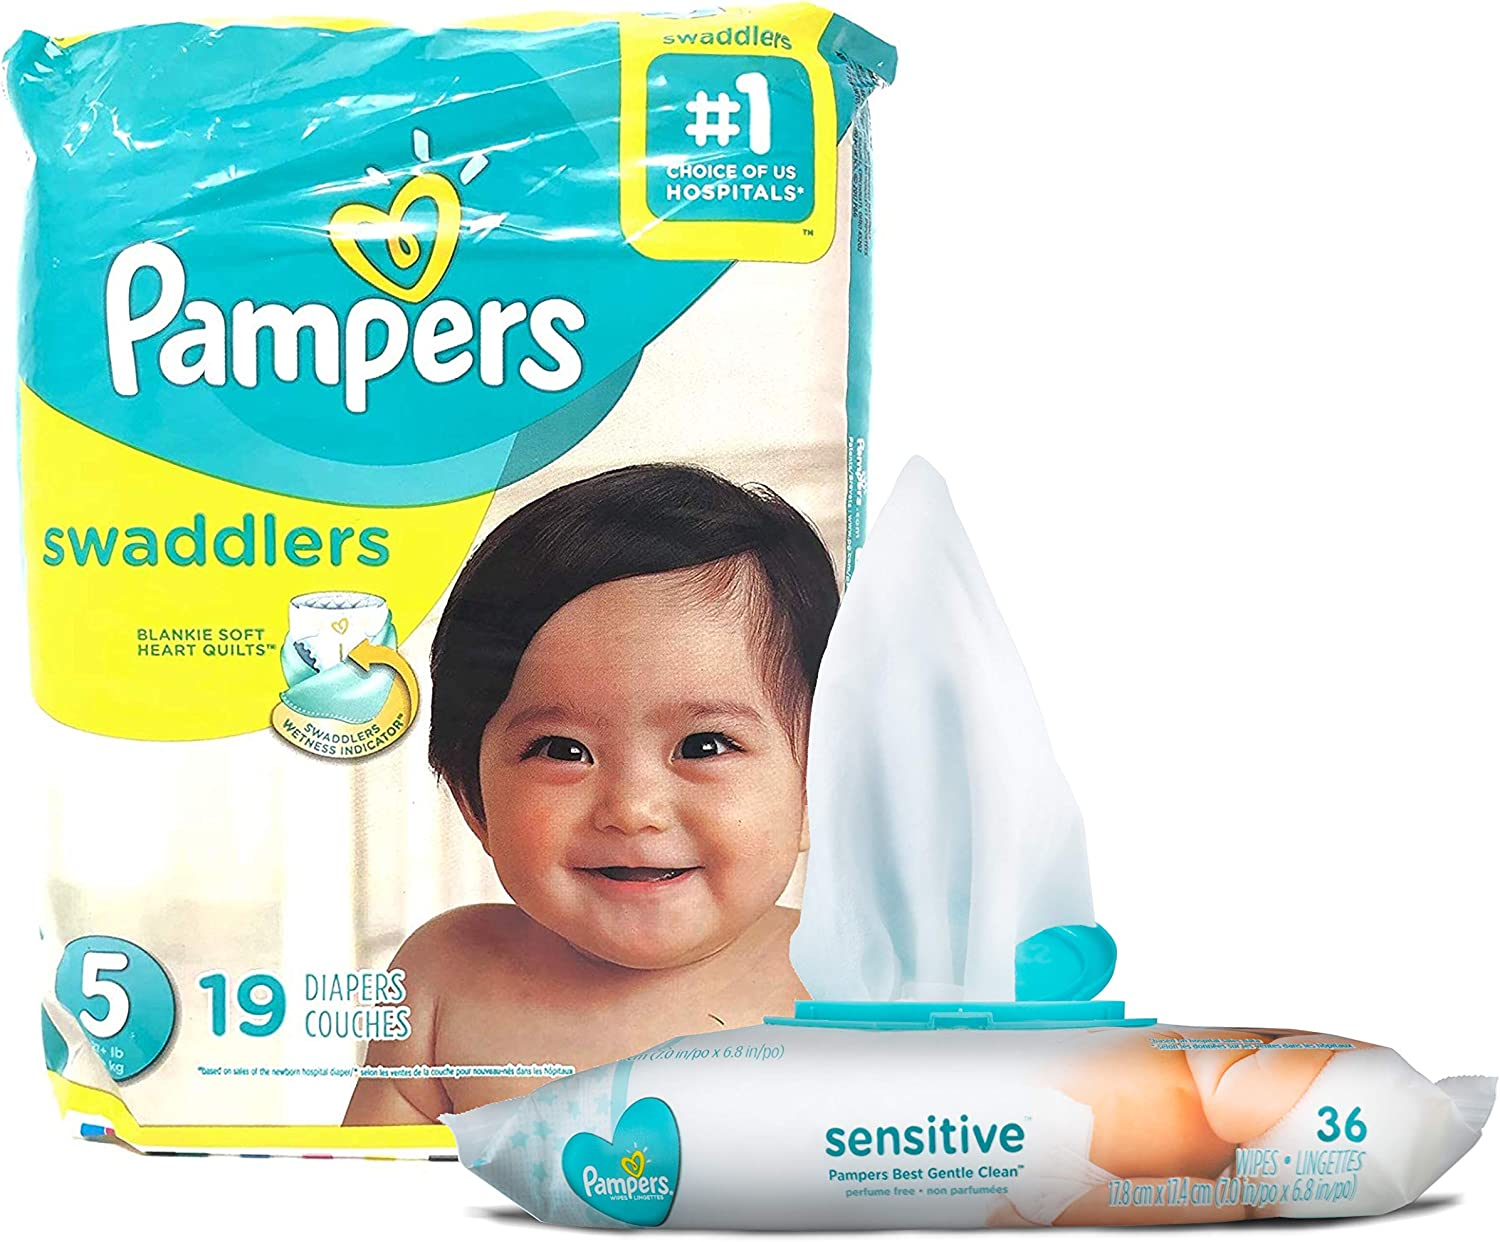 Pampers Swaddlers Disposable Size 5 Diapers (19 Count) Bundle with 36 Pampers Sensitive Care Baby Wipes